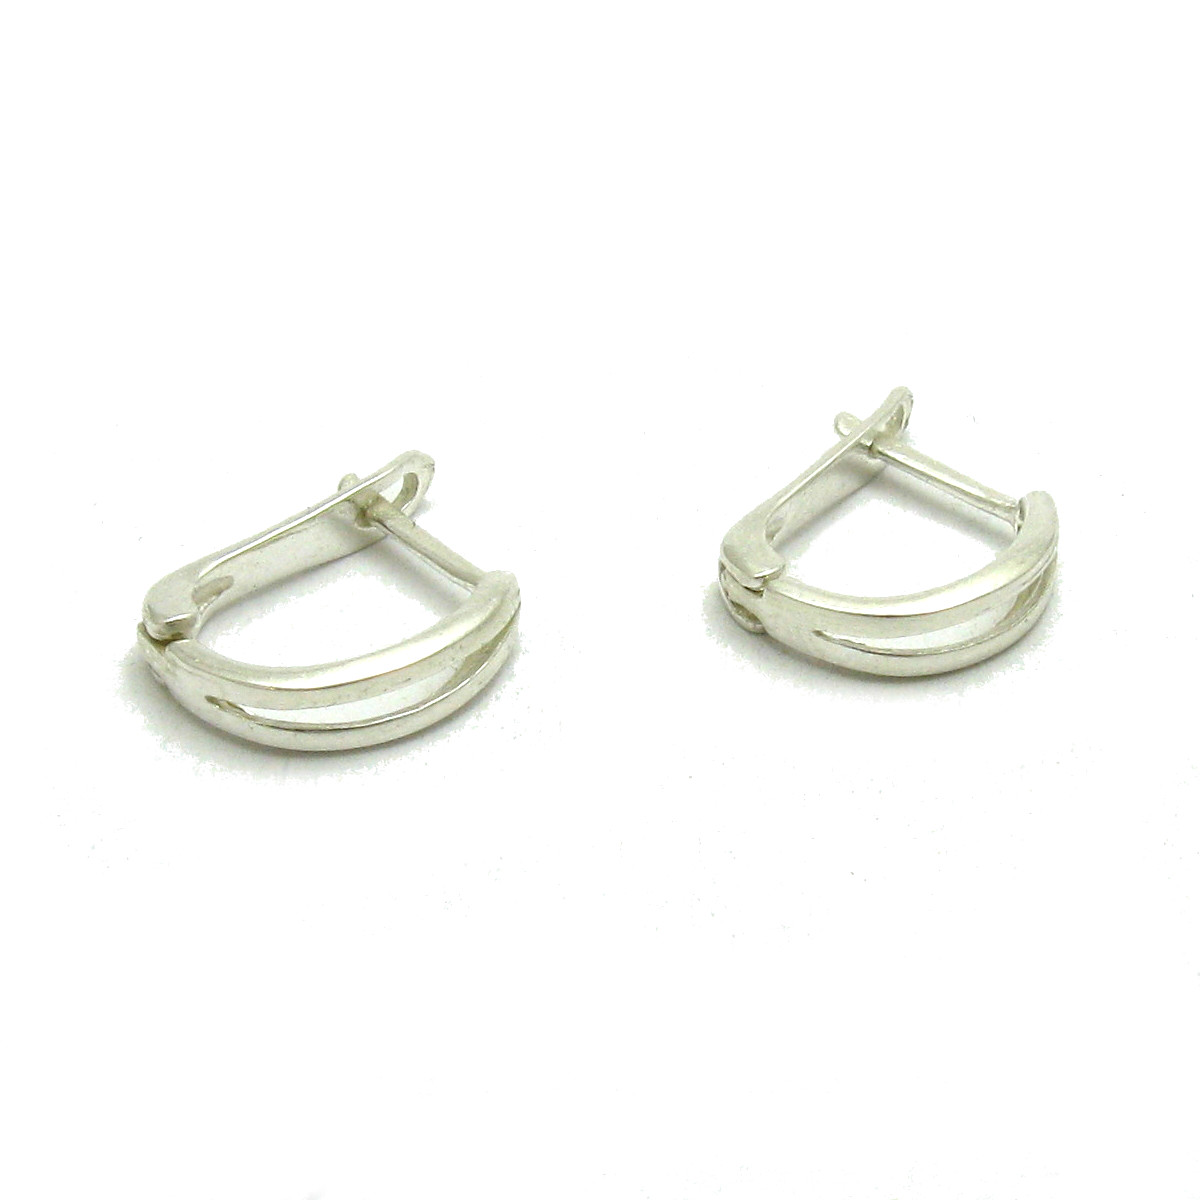 Silver earrings - E000625